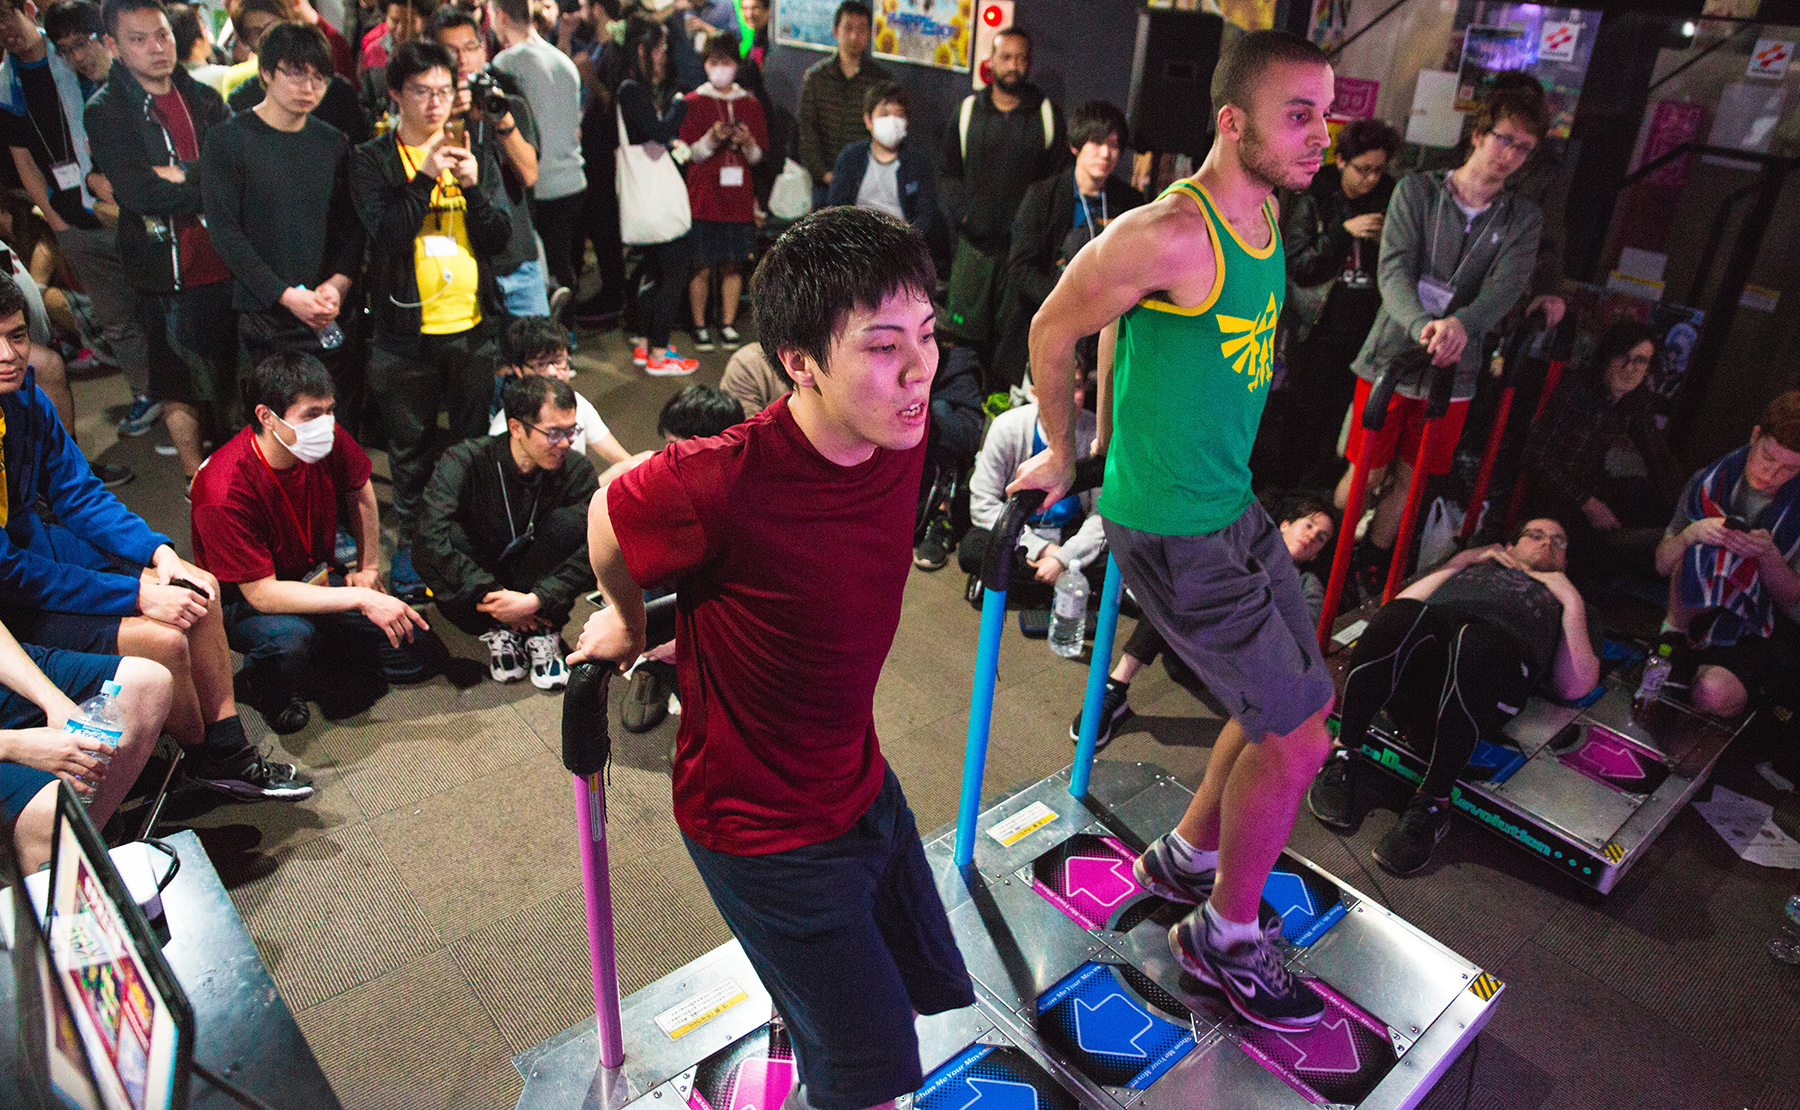 When esports blew up, DDR moved to the suburbs